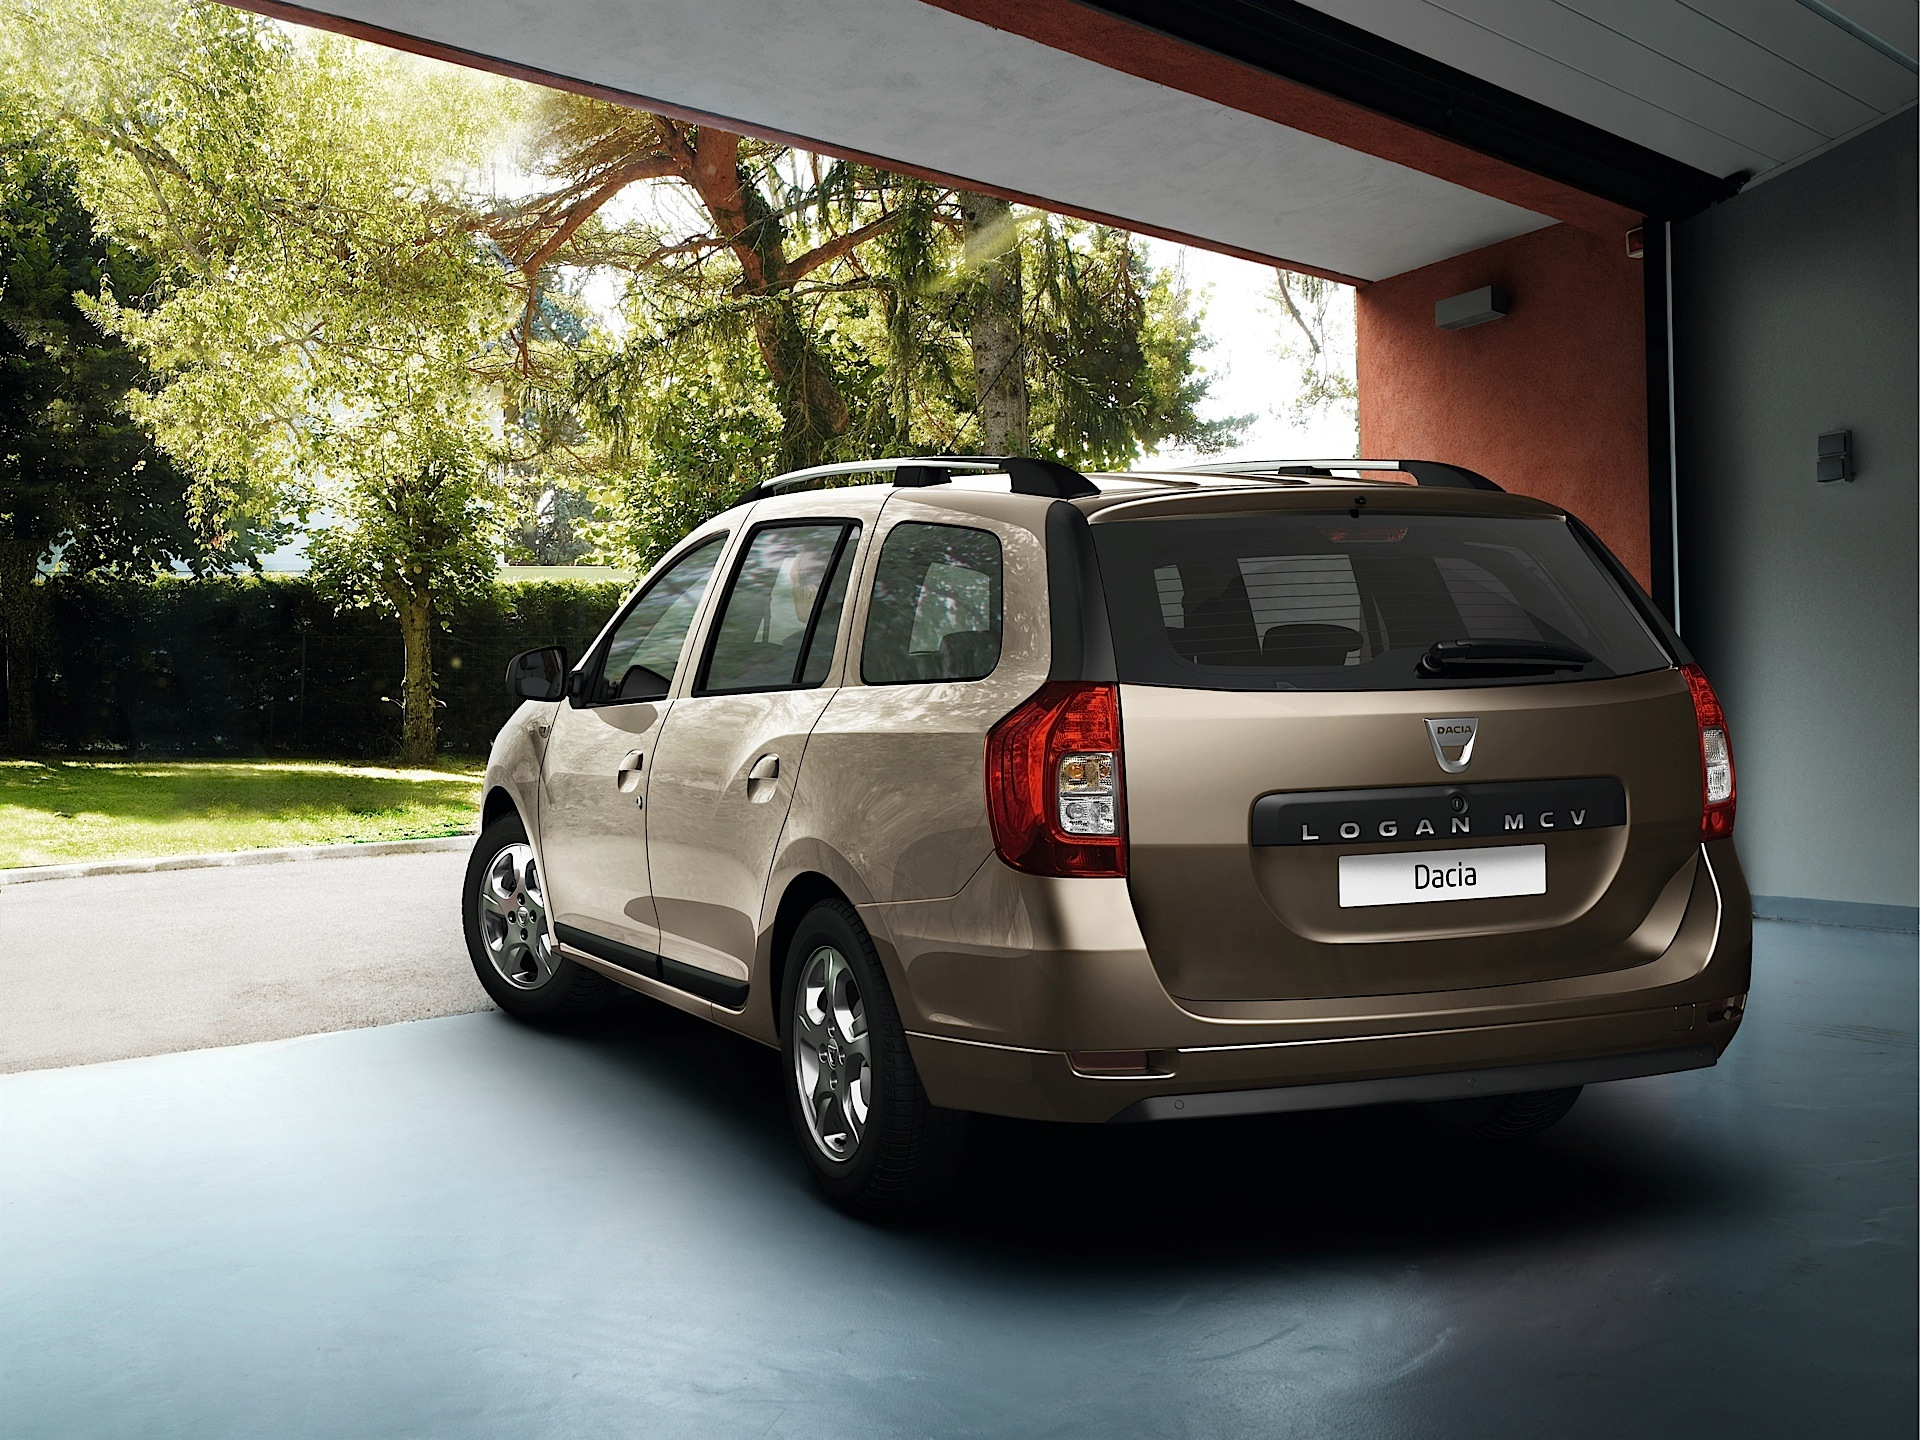 dacia logan mcv specs 2013 2014 2015 2016 autoevolution. Black Bedroom Furniture Sets. Home Design Ideas